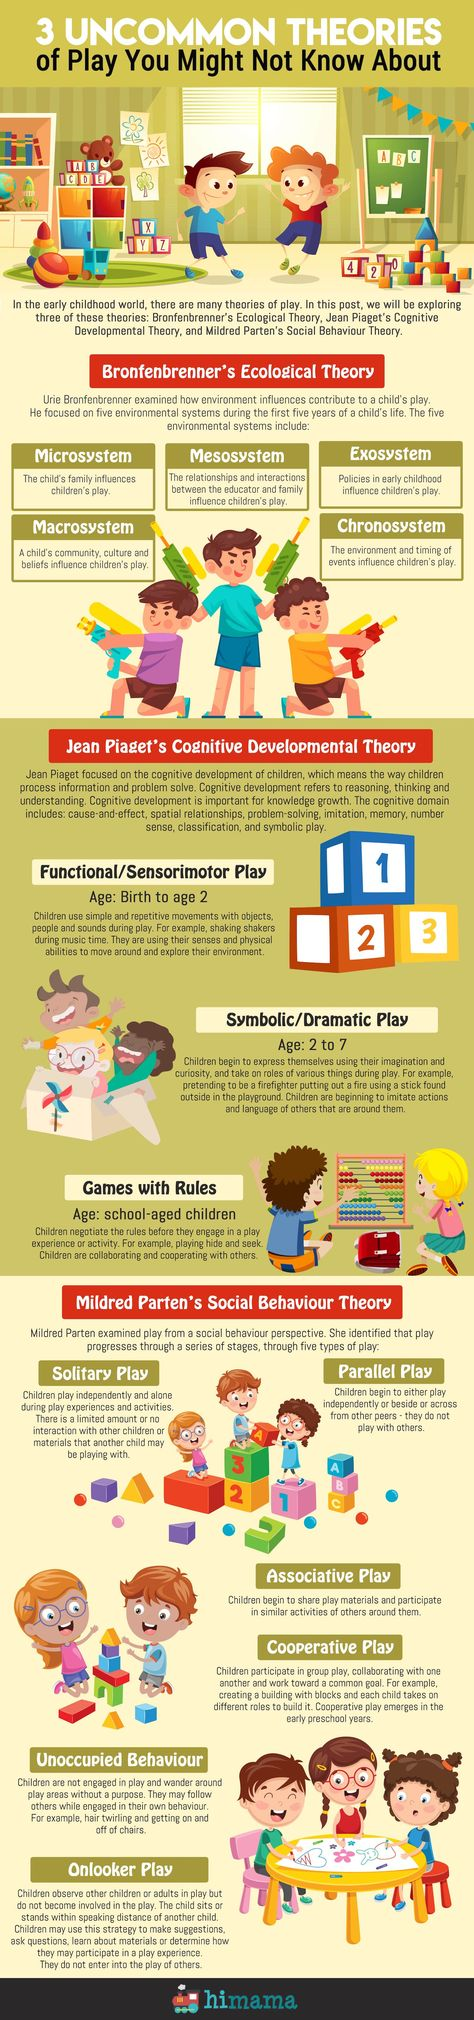 3 Uncommon Theories of Play You Might Not Know About